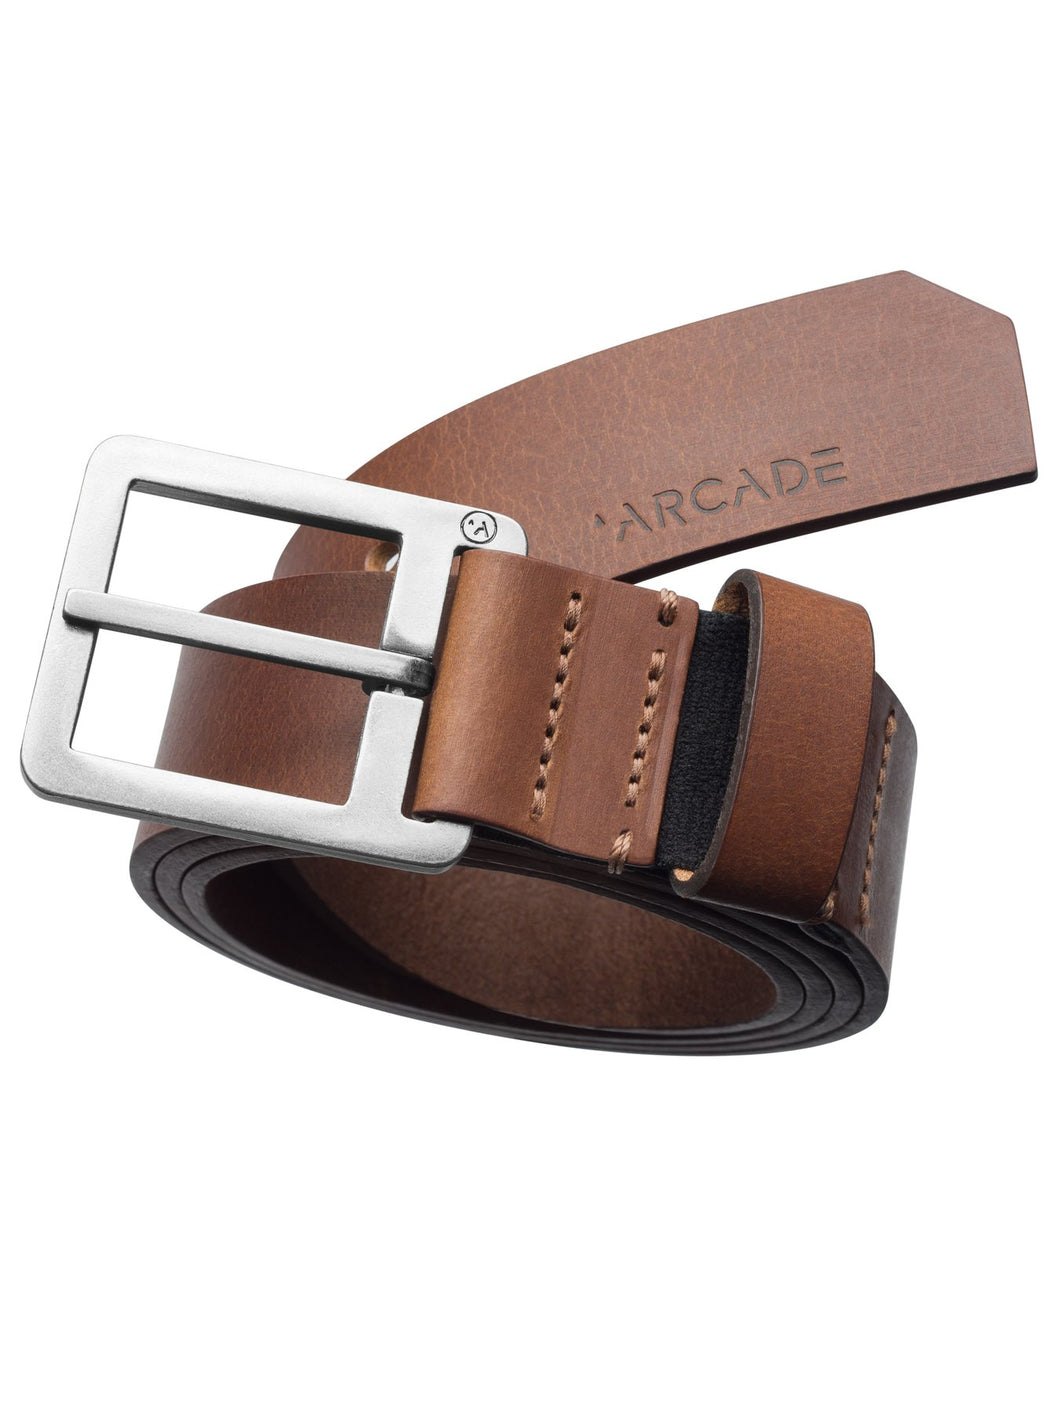 Padre Leather Belt - Brown